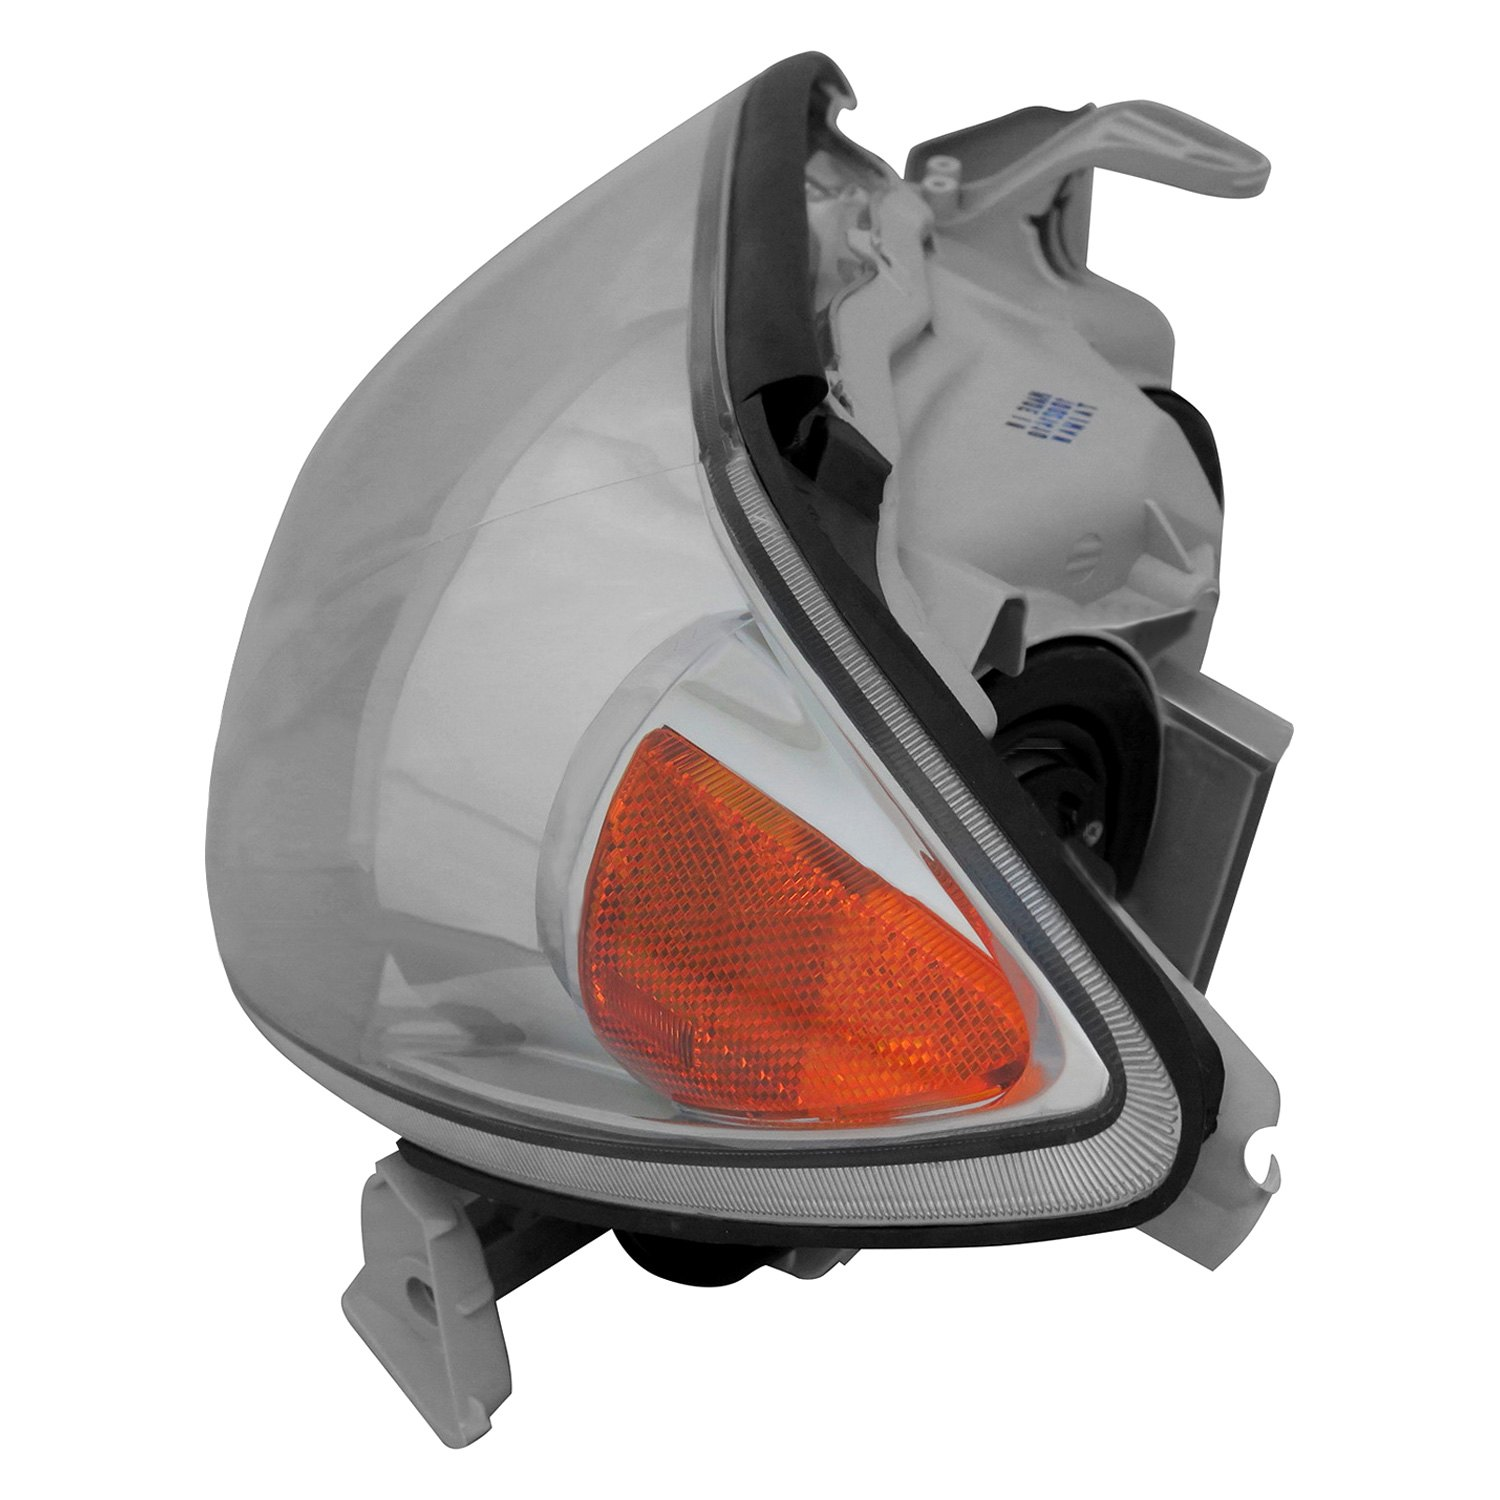 tyc toyota camry 2006 replacement headlight. Black Bedroom Furniture Sets. Home Design Ideas